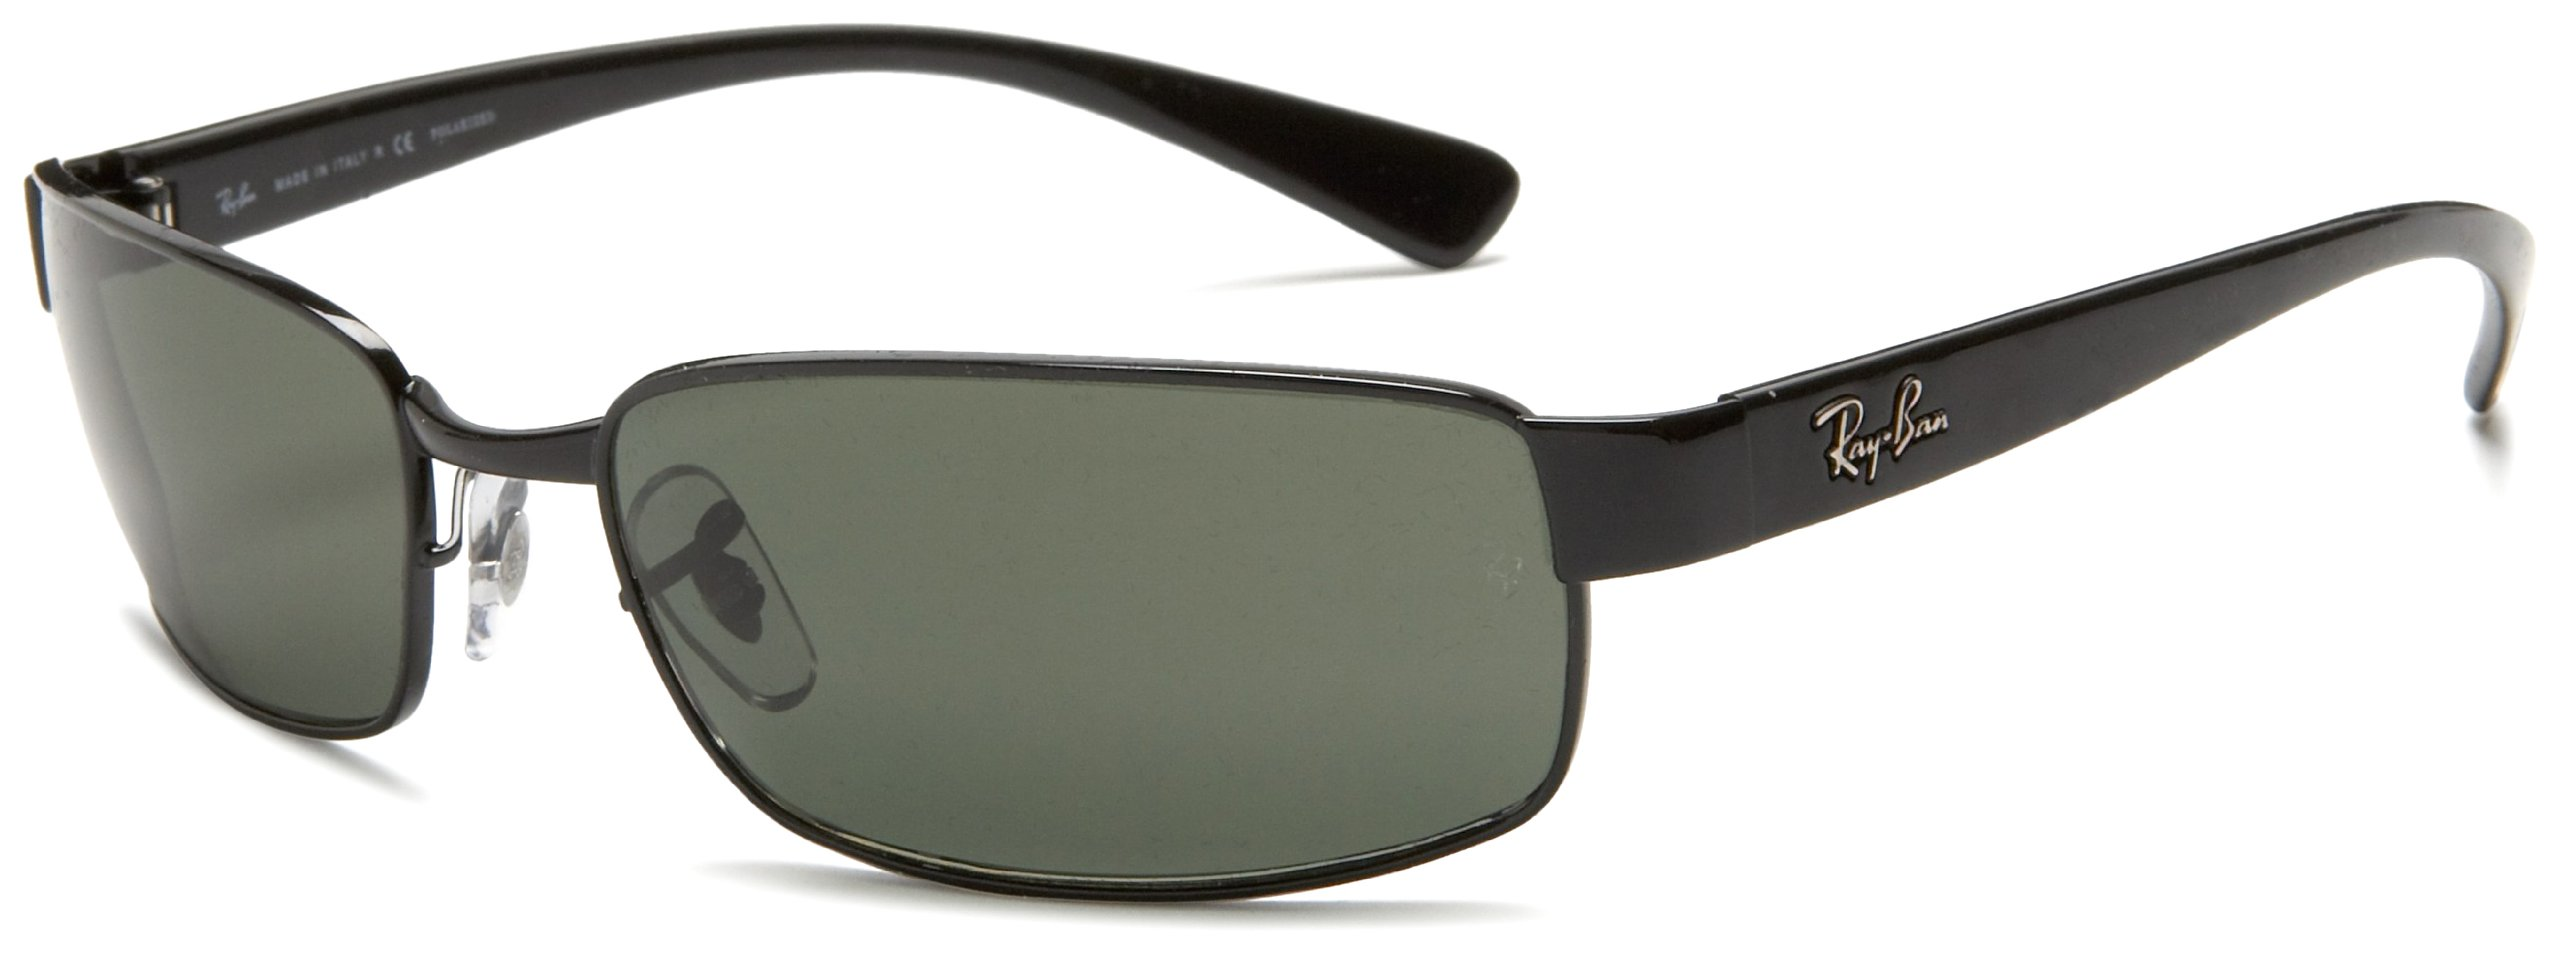 Ray-Ban RB3364 Rectangular Metal Sunglasses, Black/Polarized Green, 62 mm